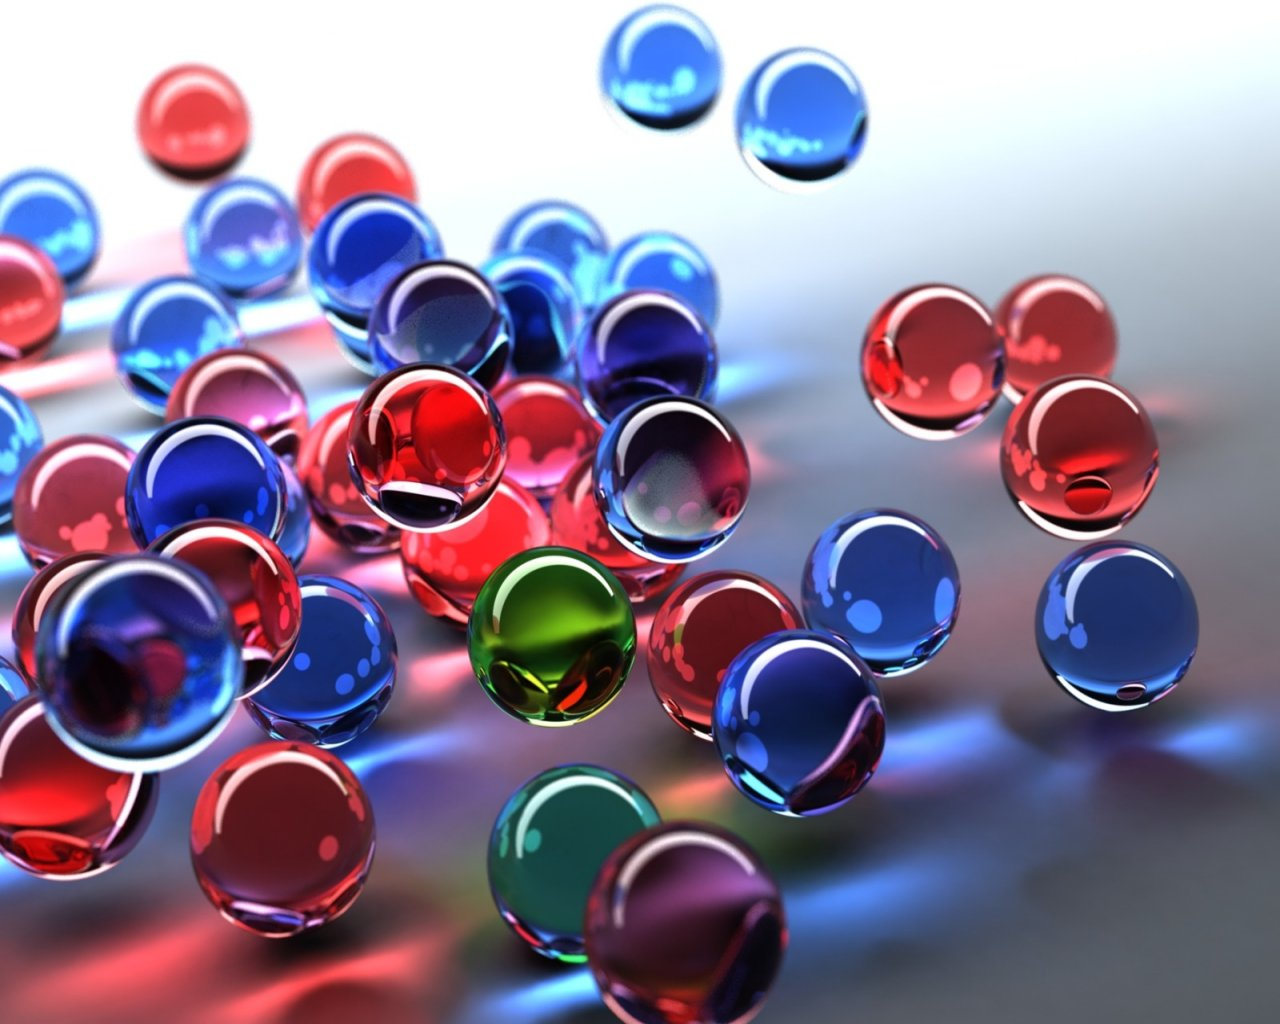 3d Bubbles Wallpaper: Art Wallpaper